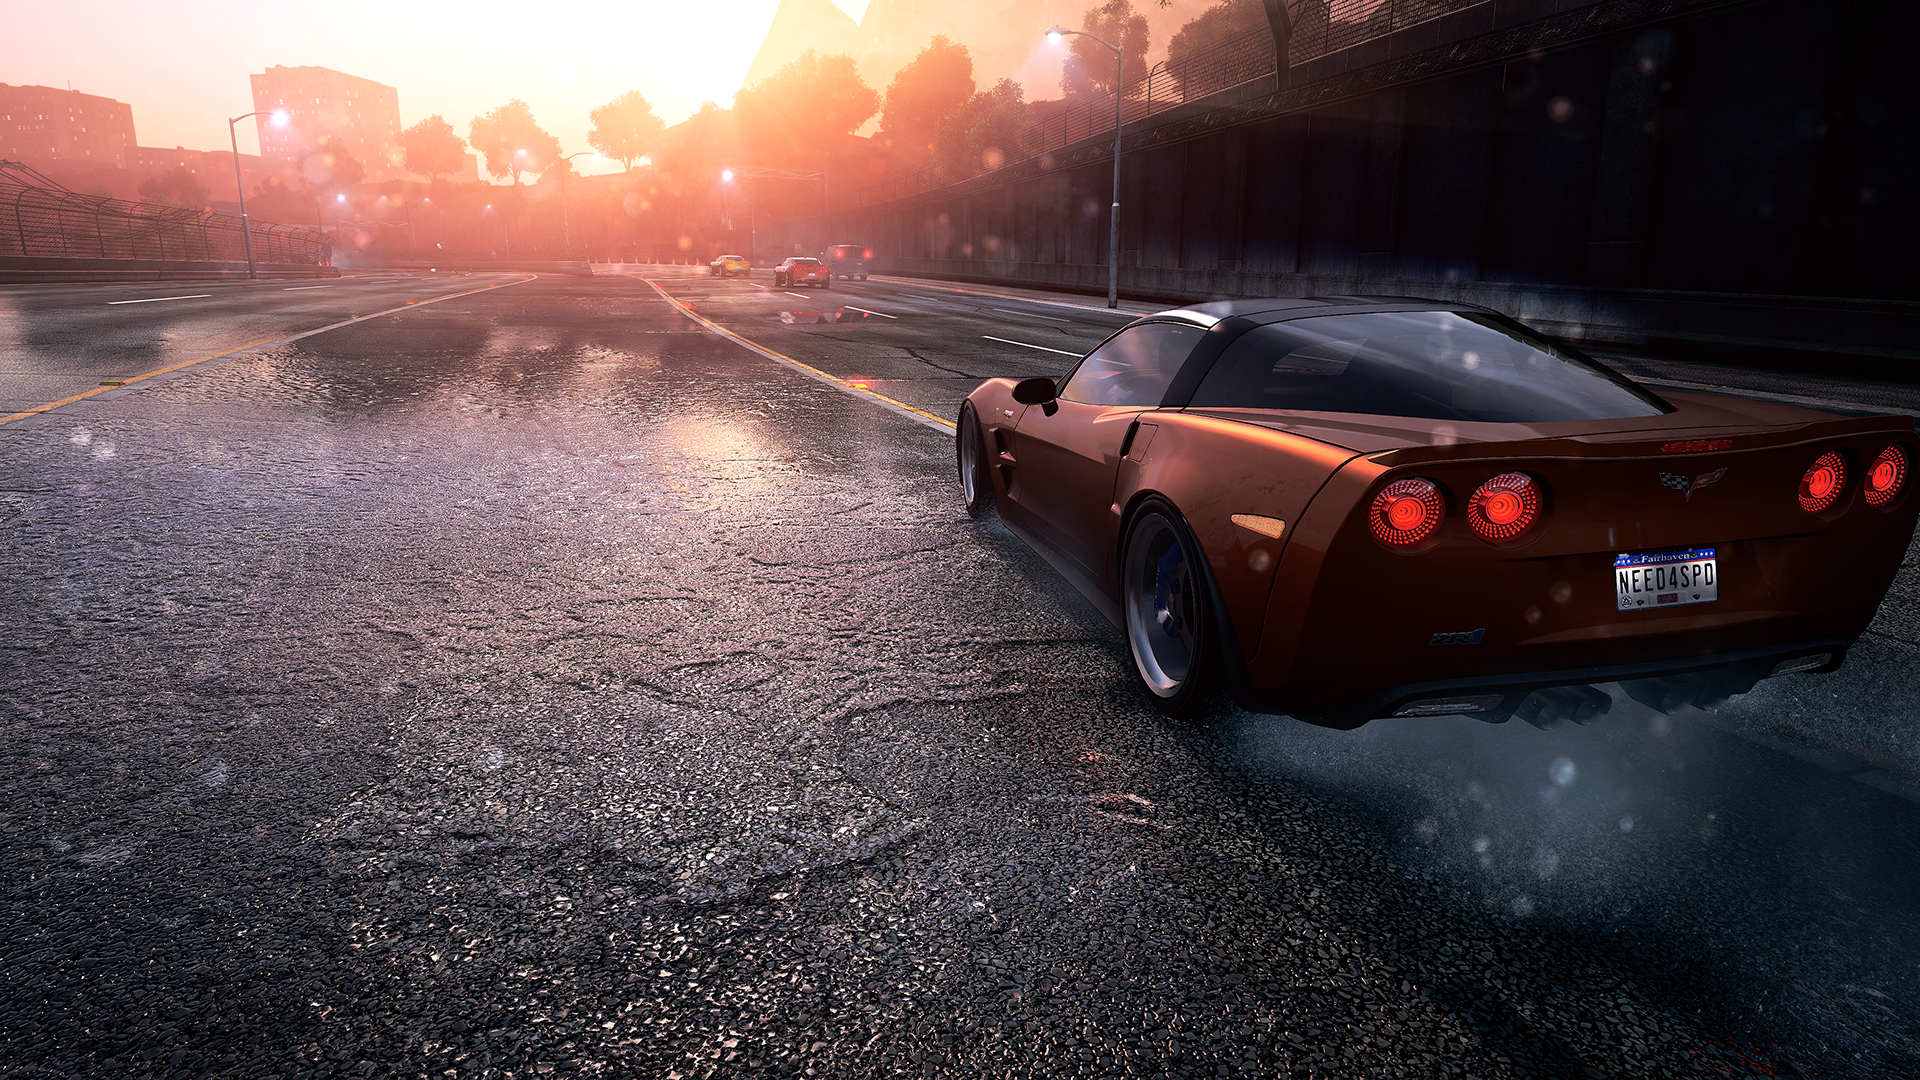 Best 33 NFS Most Wanted Backgrounds on HipWallpaper The Wanted 1920x1080